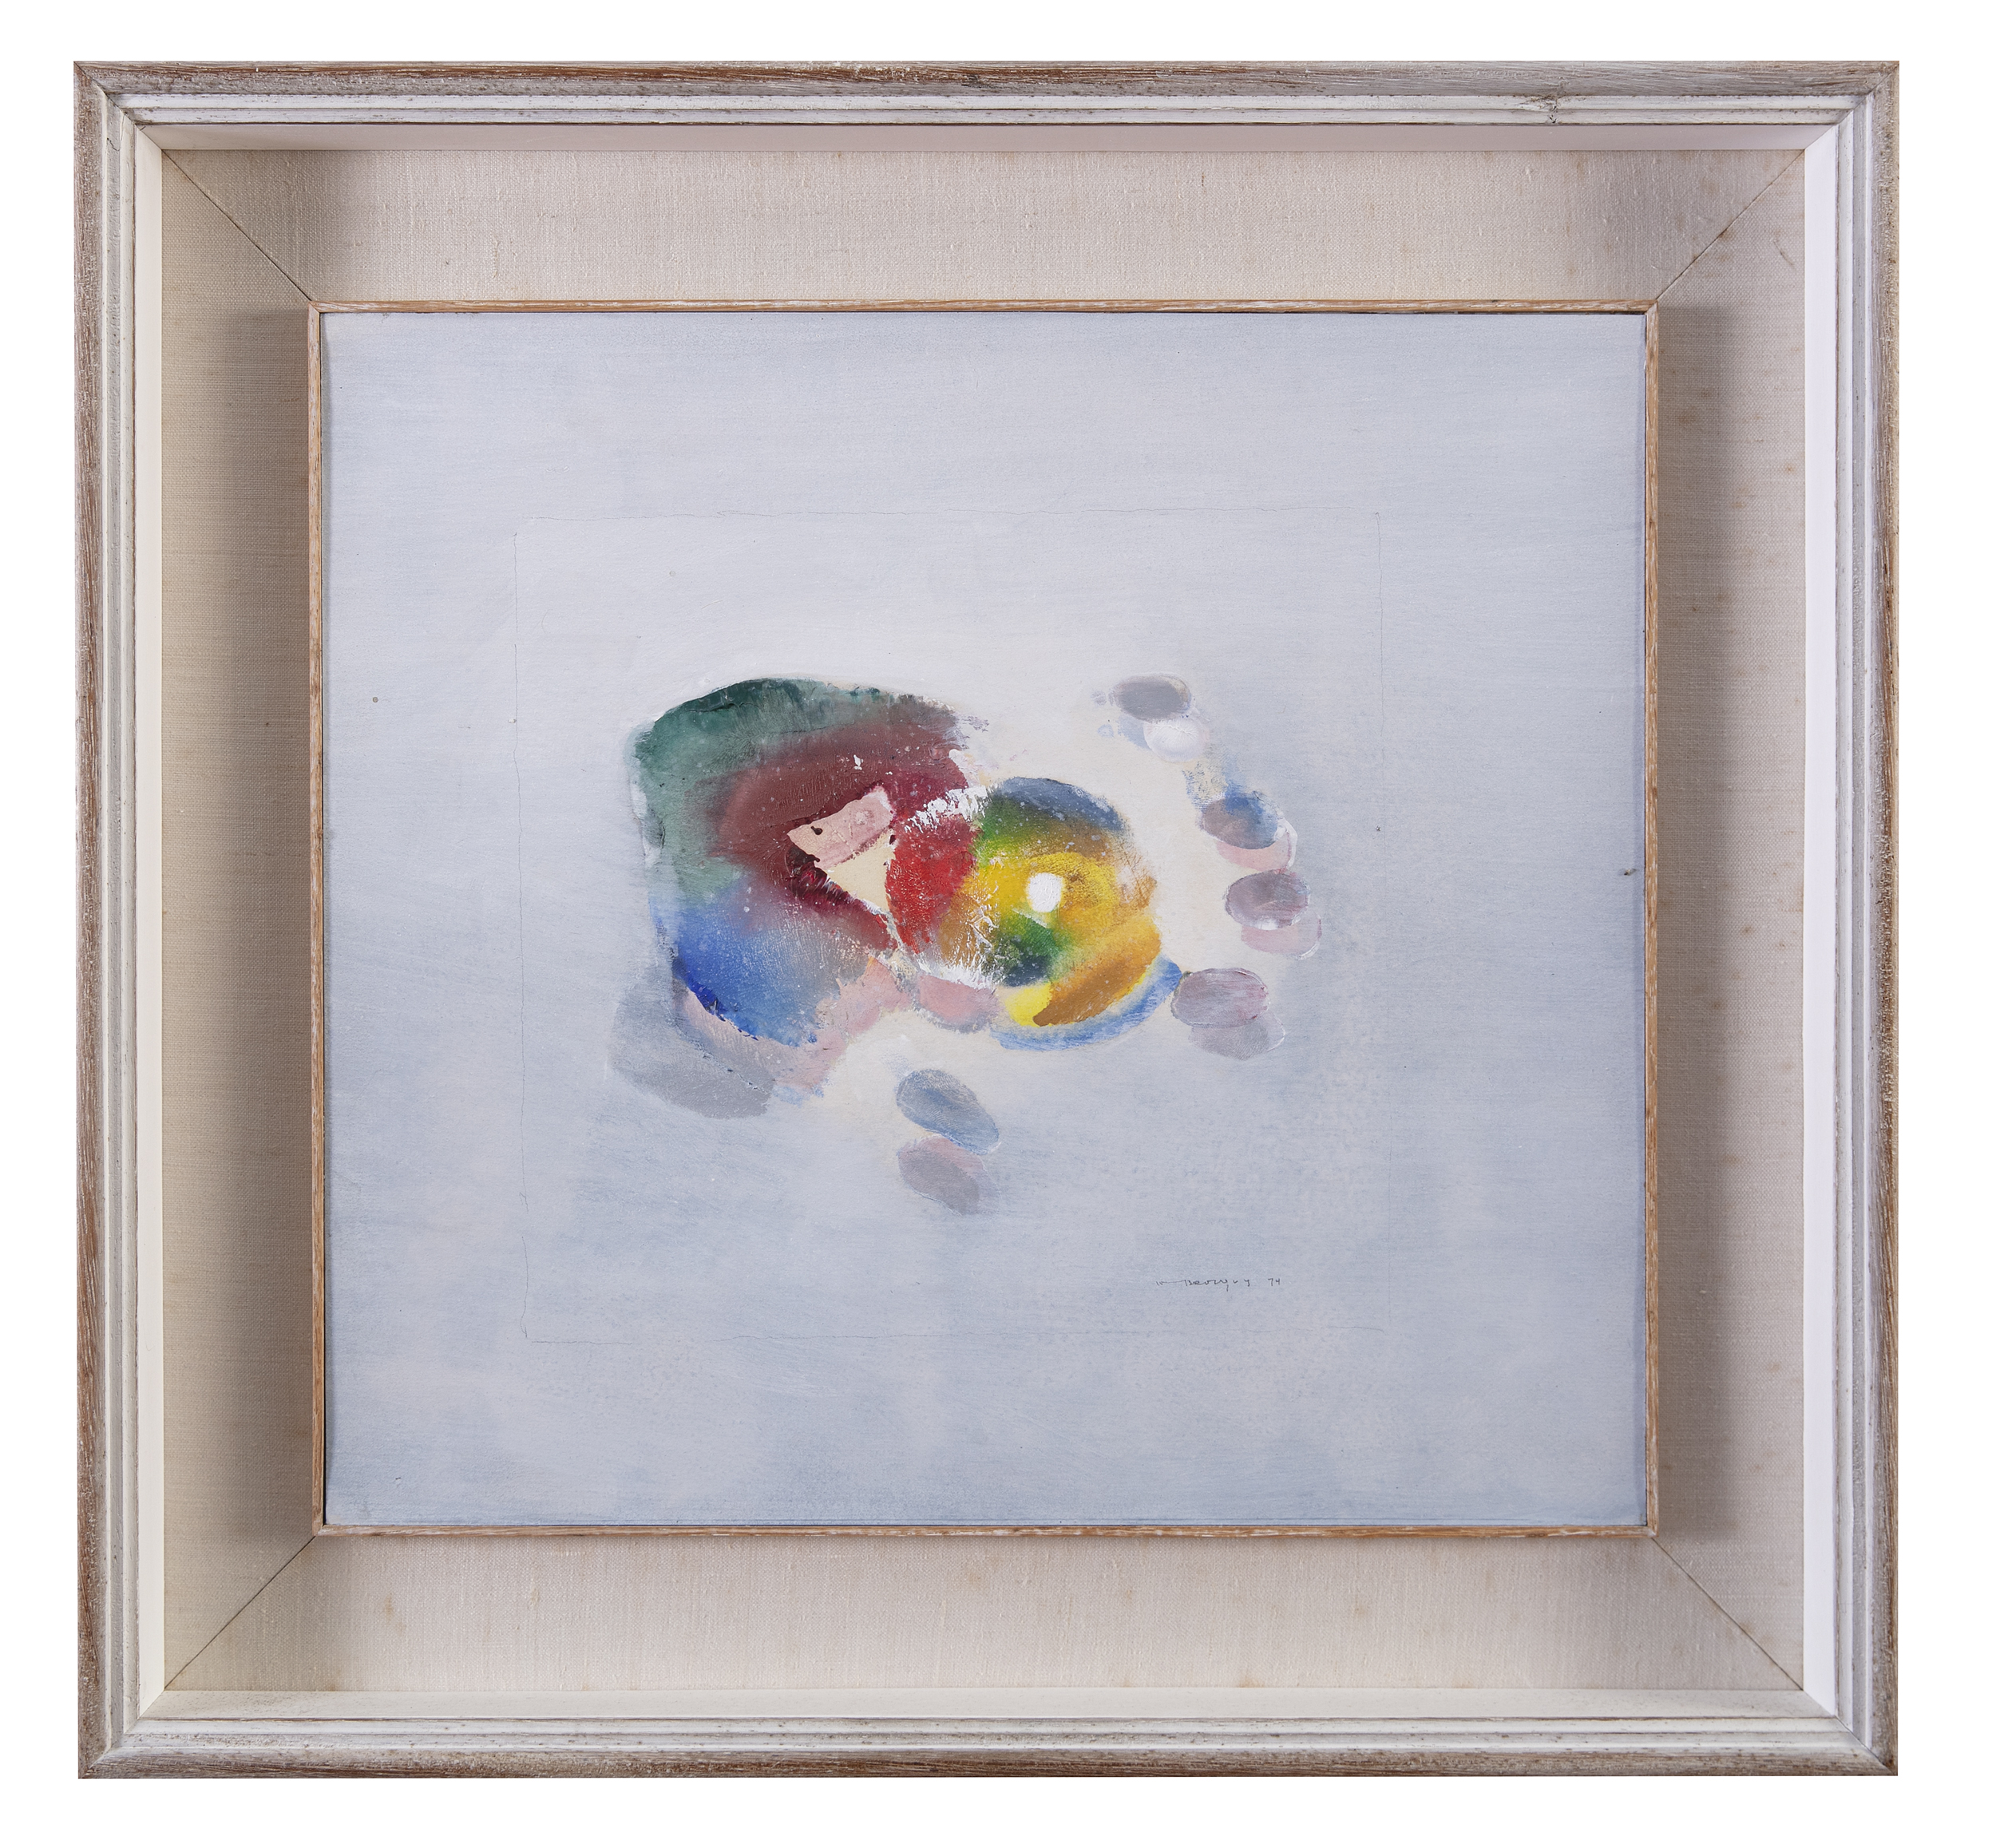 Lot 26 - Louis le Brocquy HRHA (1916-2012)Lemon in the HandOil on board with pencil, 34.5 x 38cm (13½ x 15)